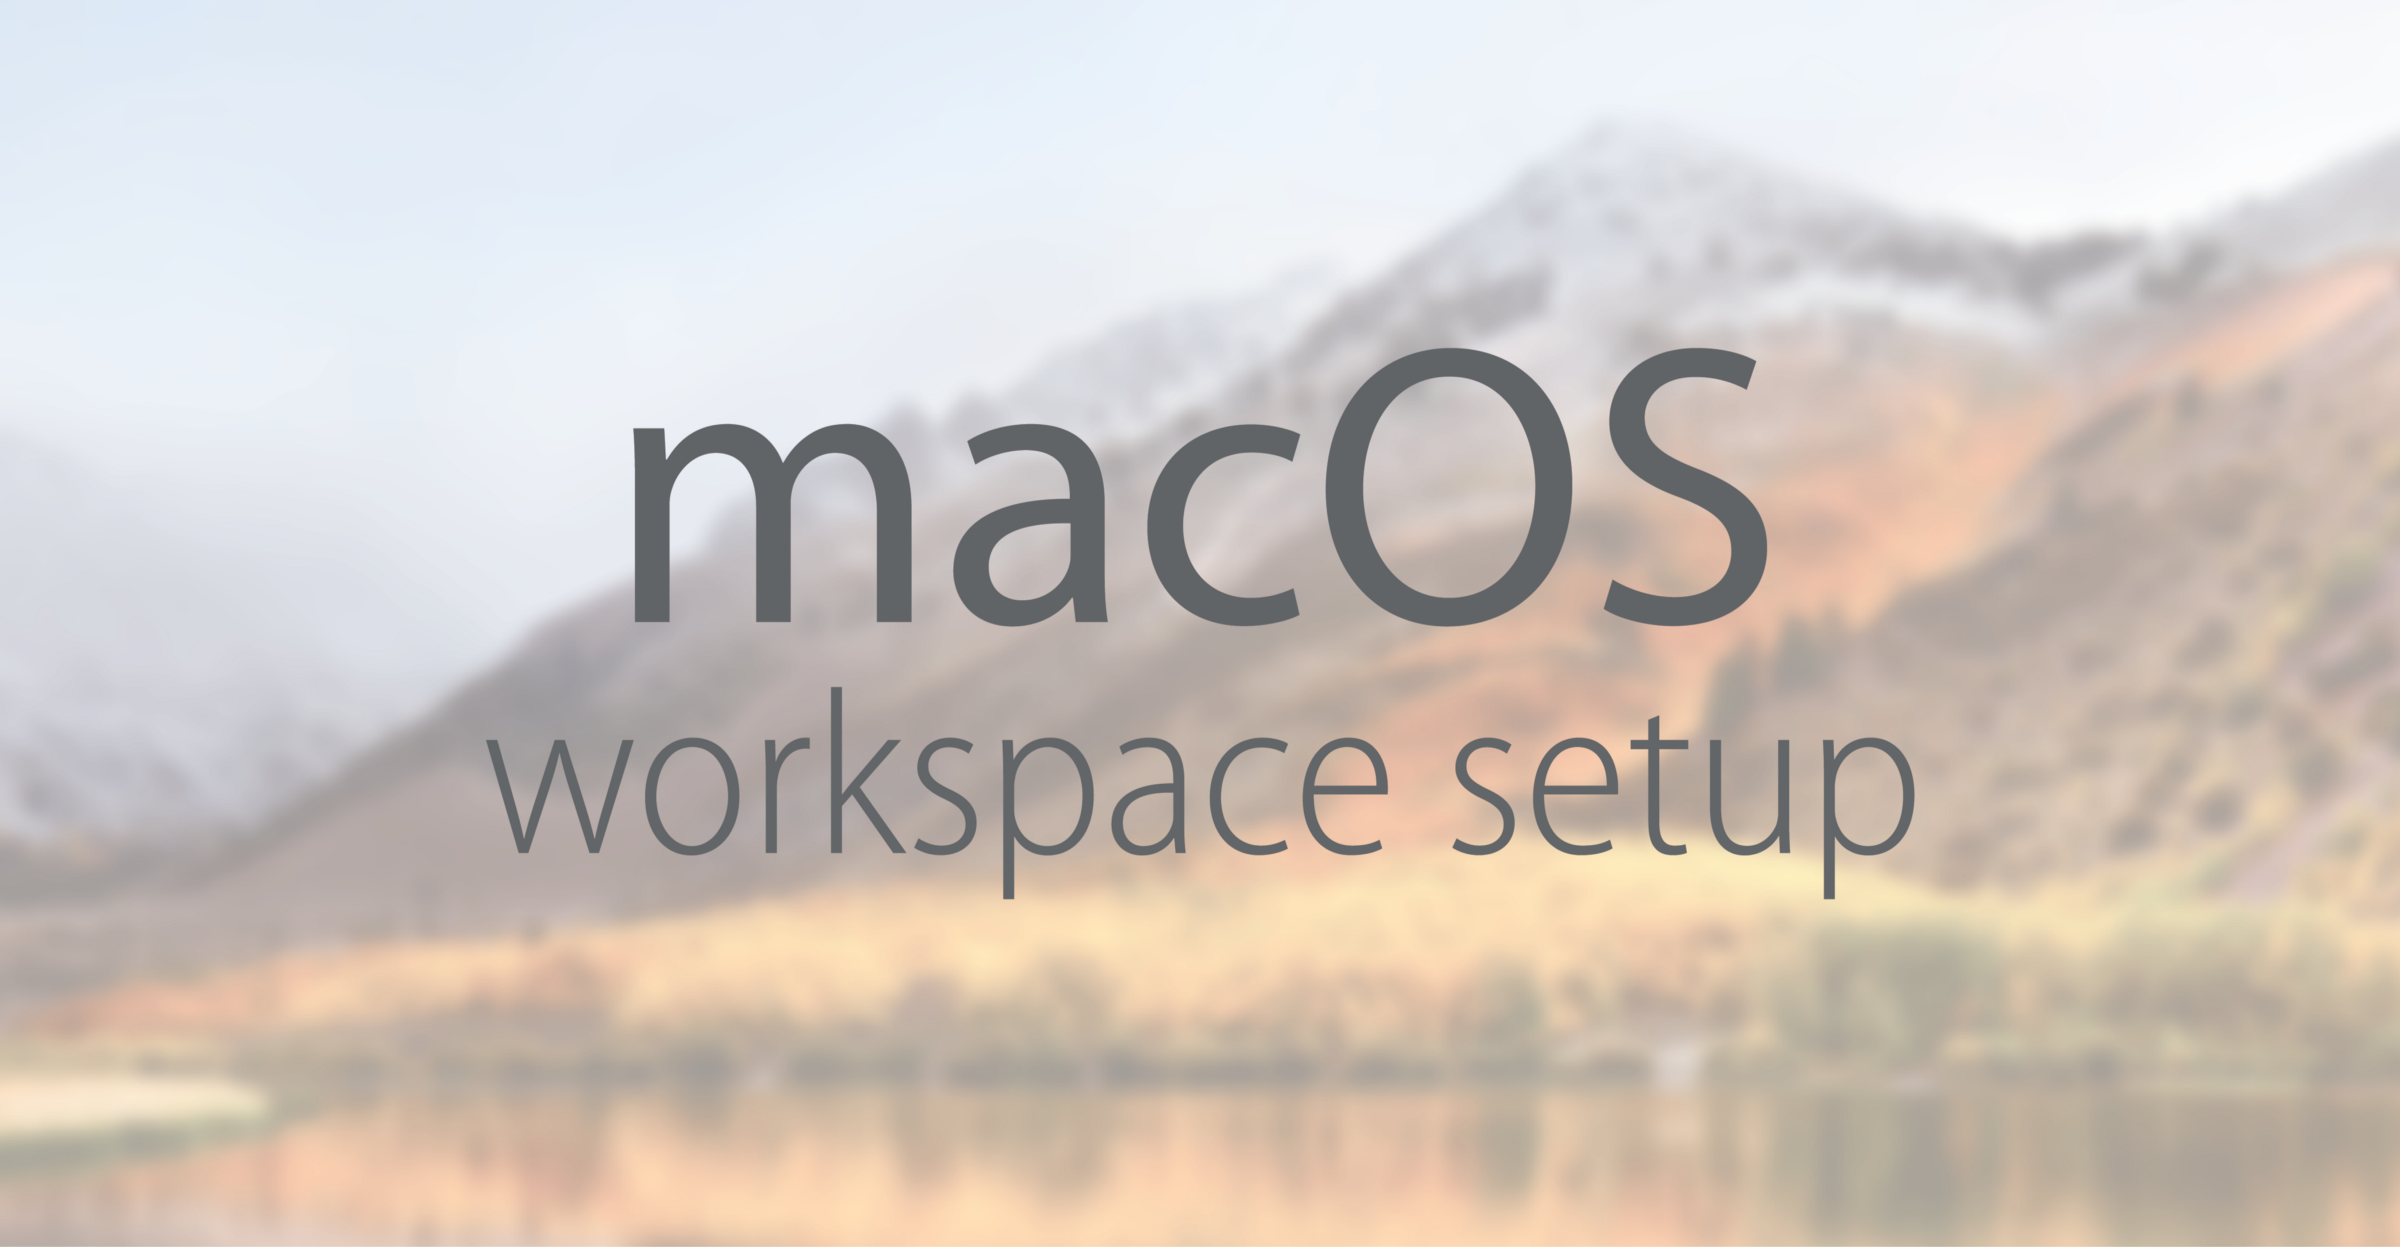 Personal macOS Workspace Setup - By